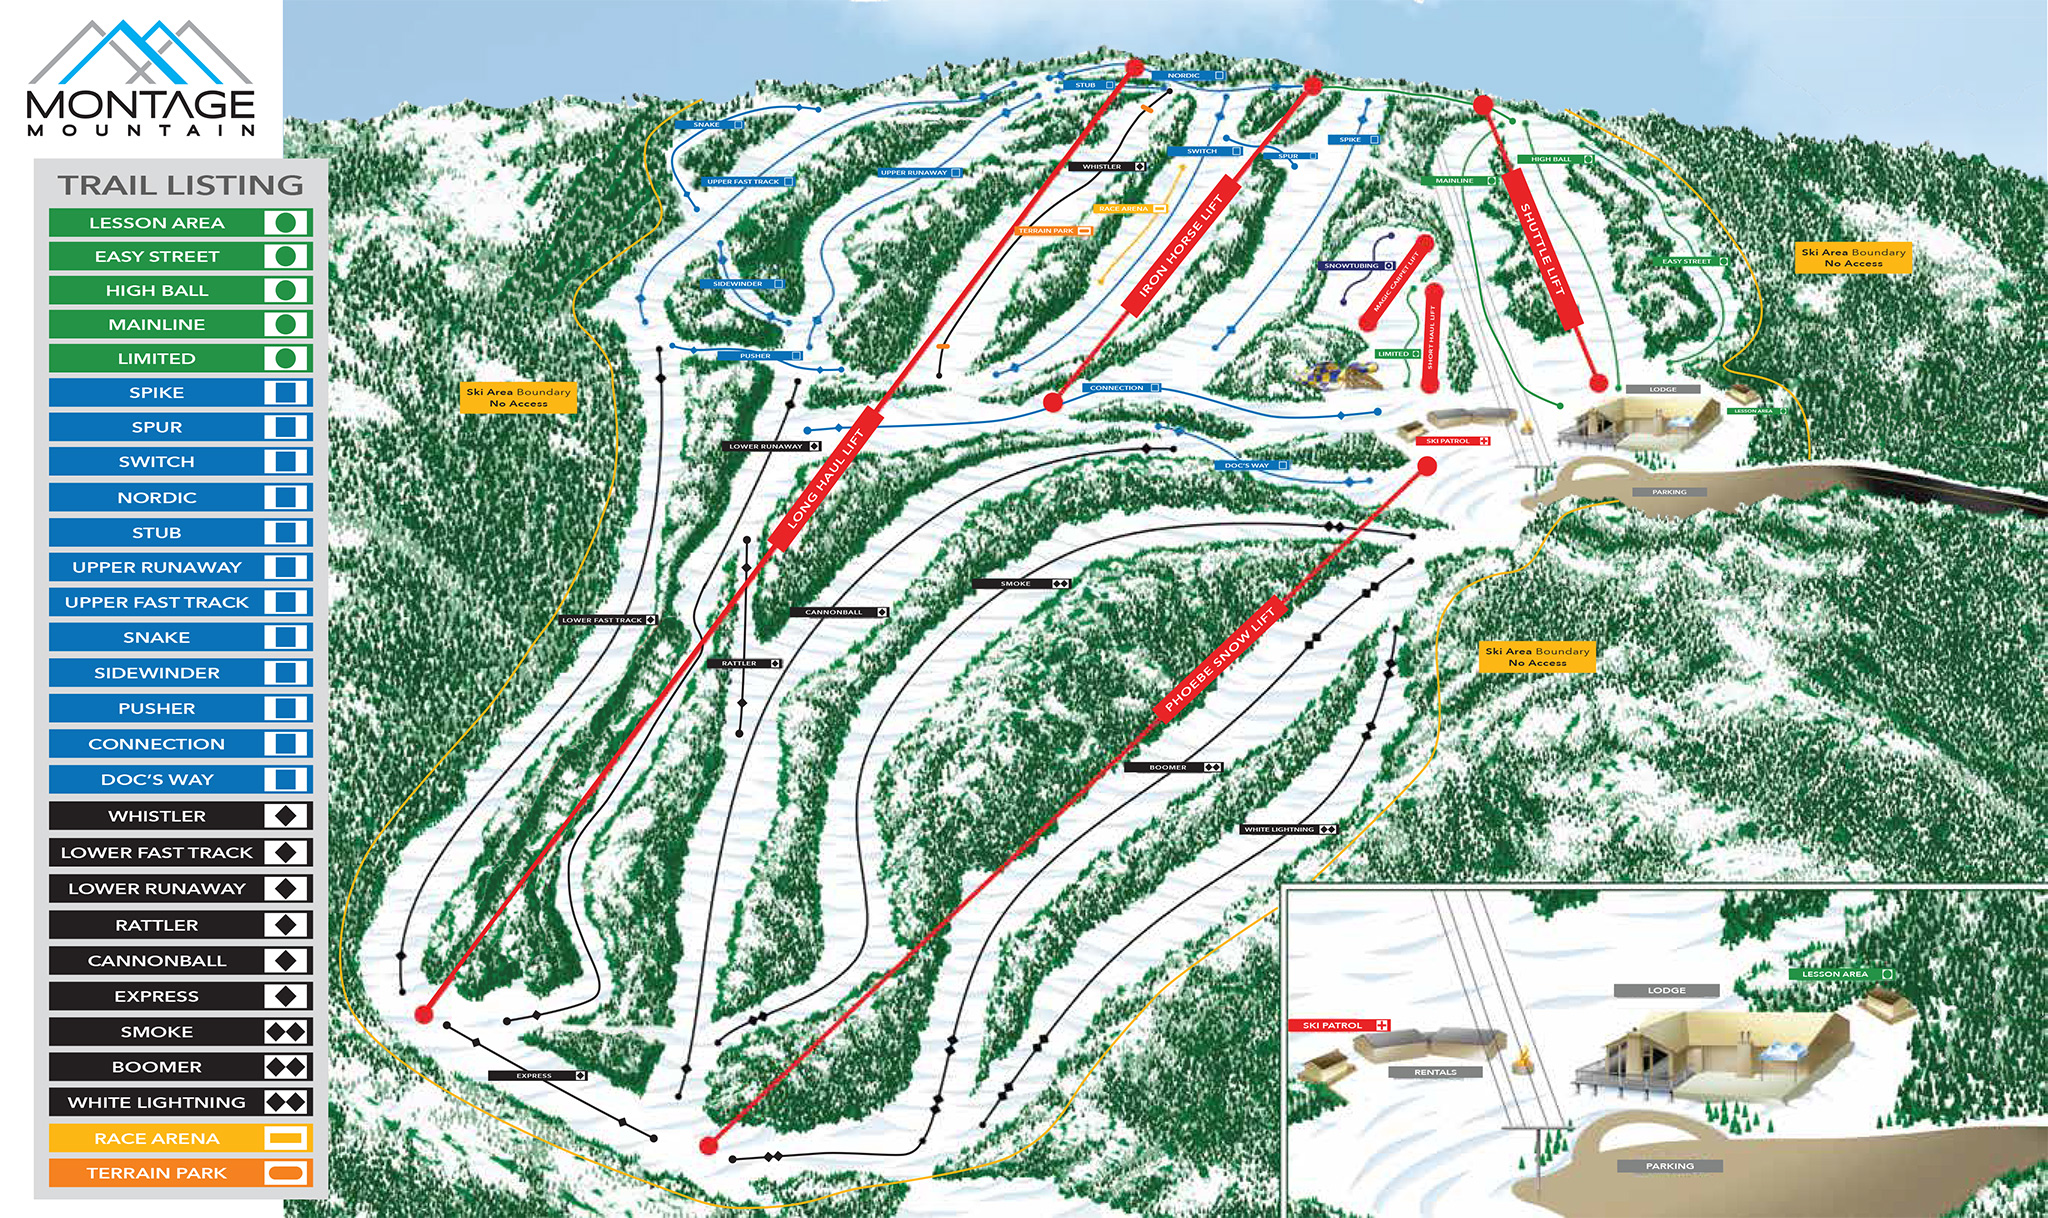 pocono ski resort | montage mountain trail map | pa ski resort